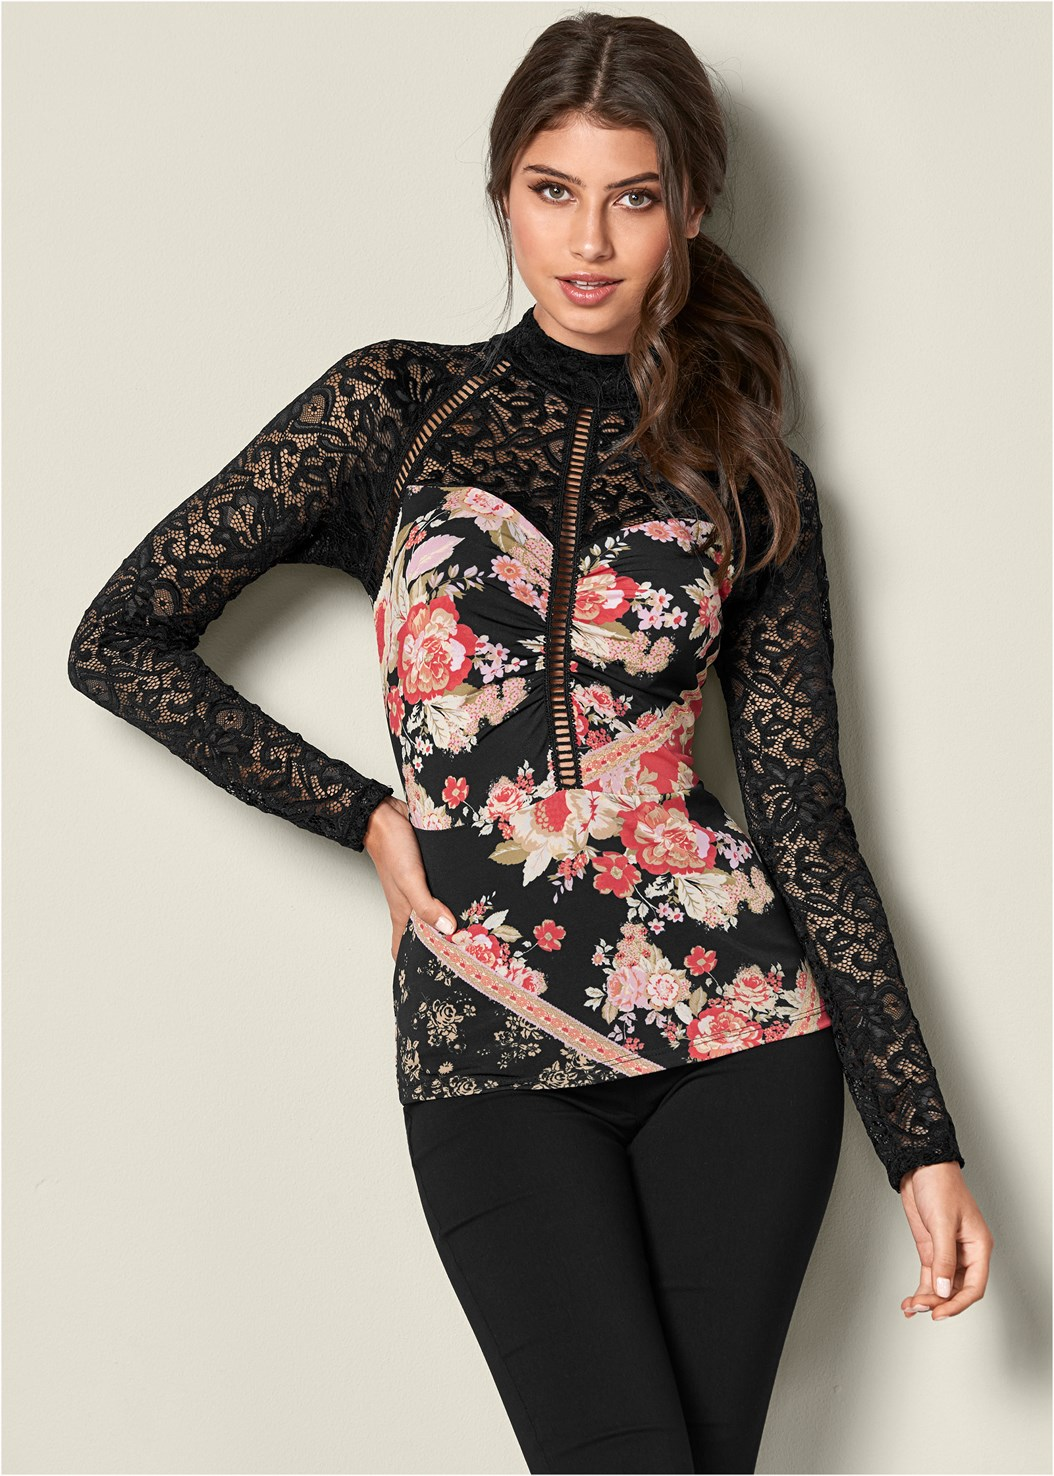 Lace Detail Mock Neck Top,Mid Rise Slimming Stretch Jeggings,Heel Embellished Boot,Faux Suede Pointy Booties